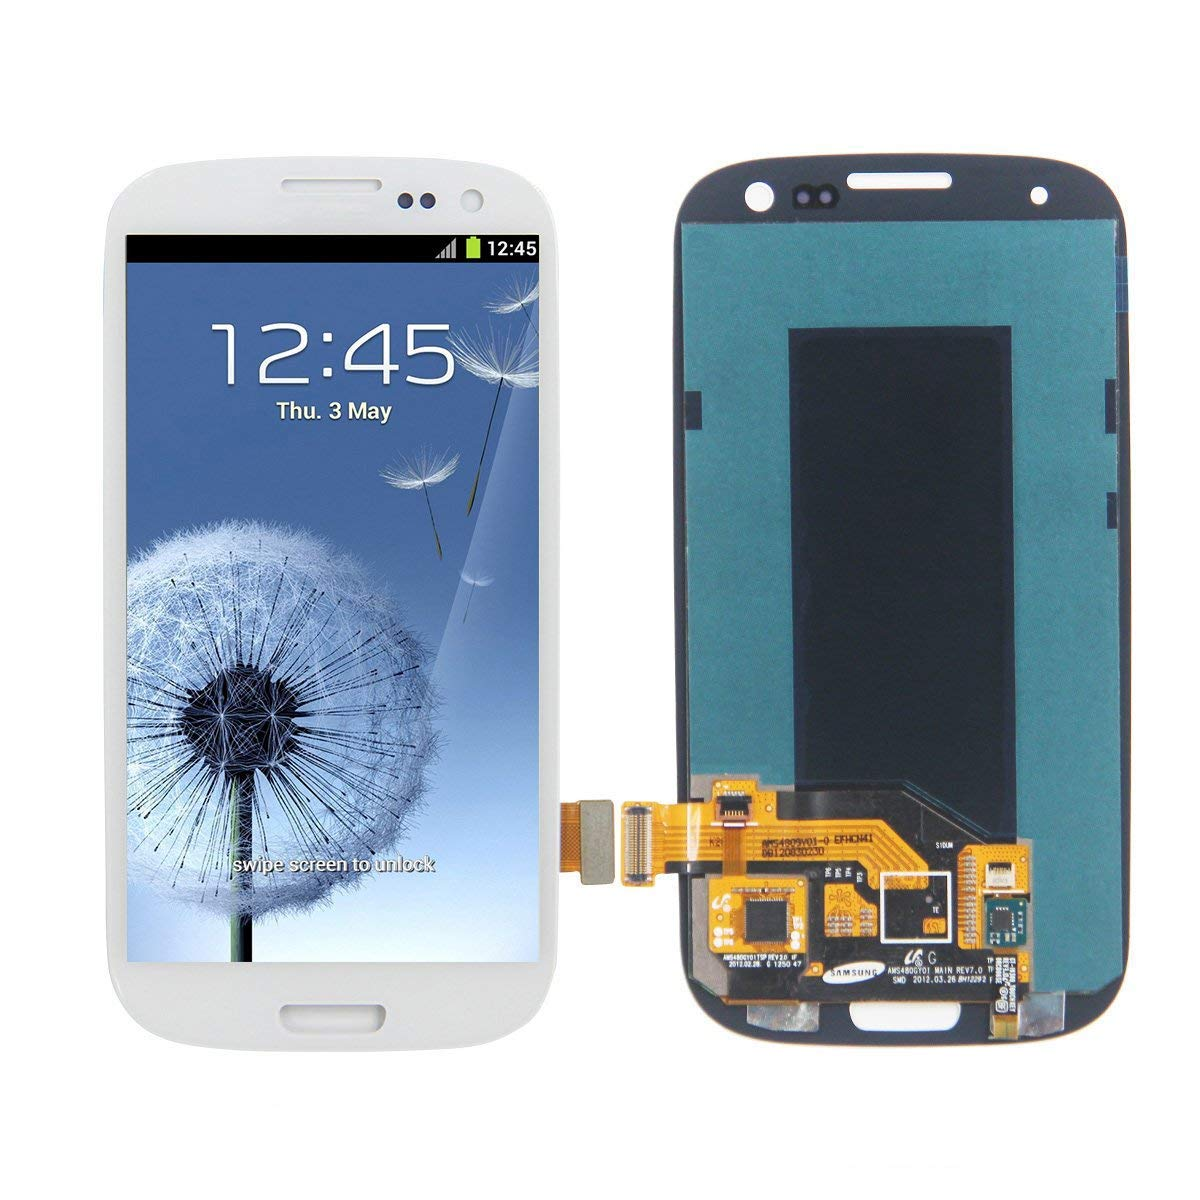 Amazon.com: HJSDtech LCD Display Screen Touch Screen Digitizer Assembly  Replacement for Samsung Galaxy S3 Ill i9300 SCH-i535 R530 Sprint L710 T999  i747 ...